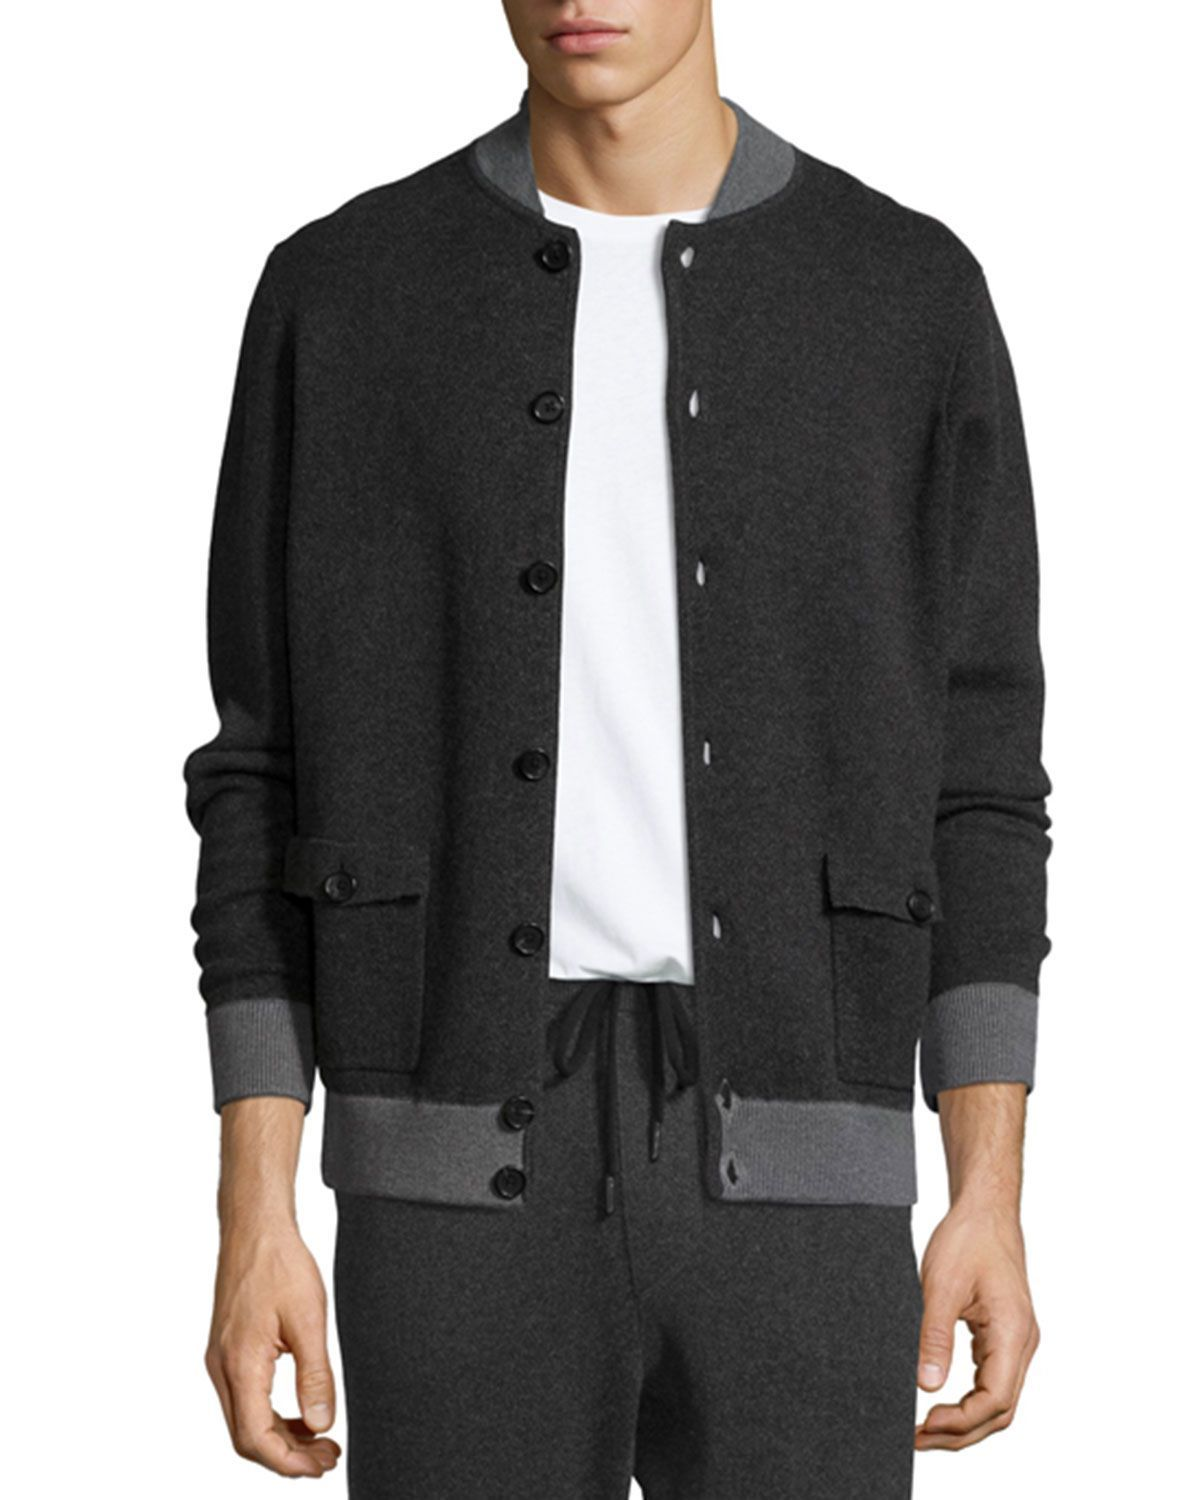 Cotton-Cashmere Baseball Cardigan, Black/Derby Gray | Cardigans ...